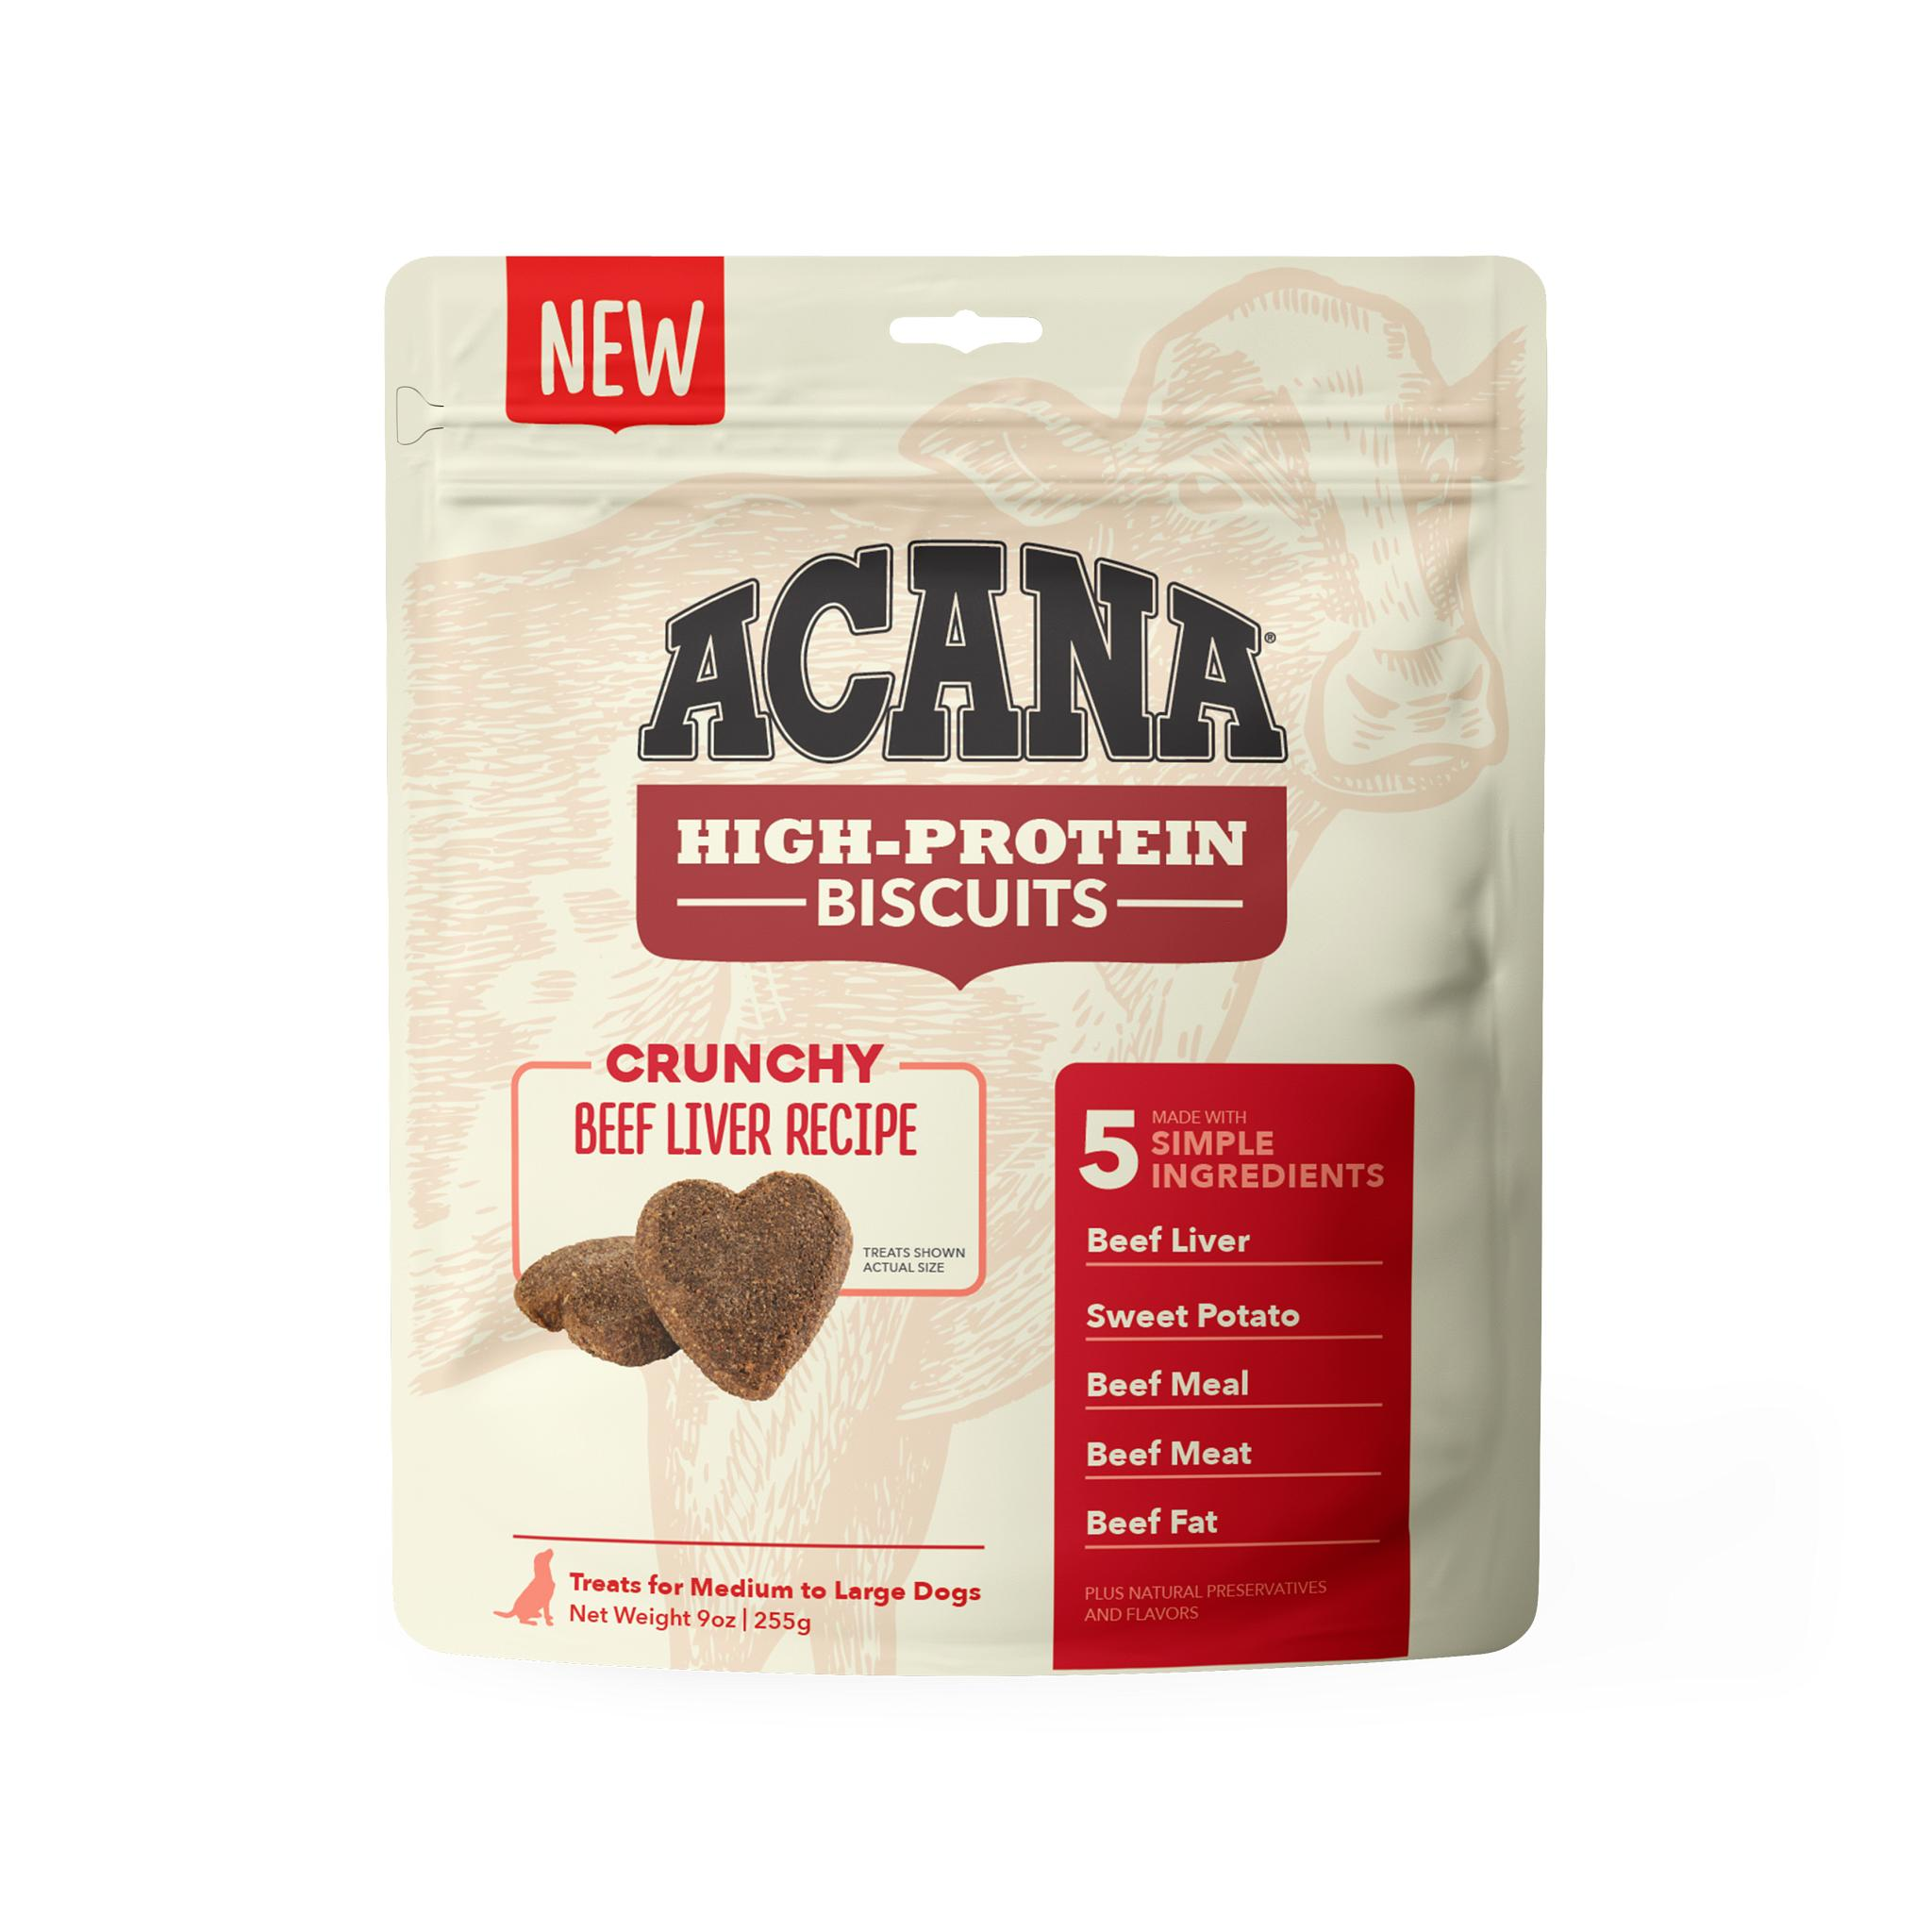 ACANA Crunchy Biscuits Beef Liver Recipe Dog Treats, Large